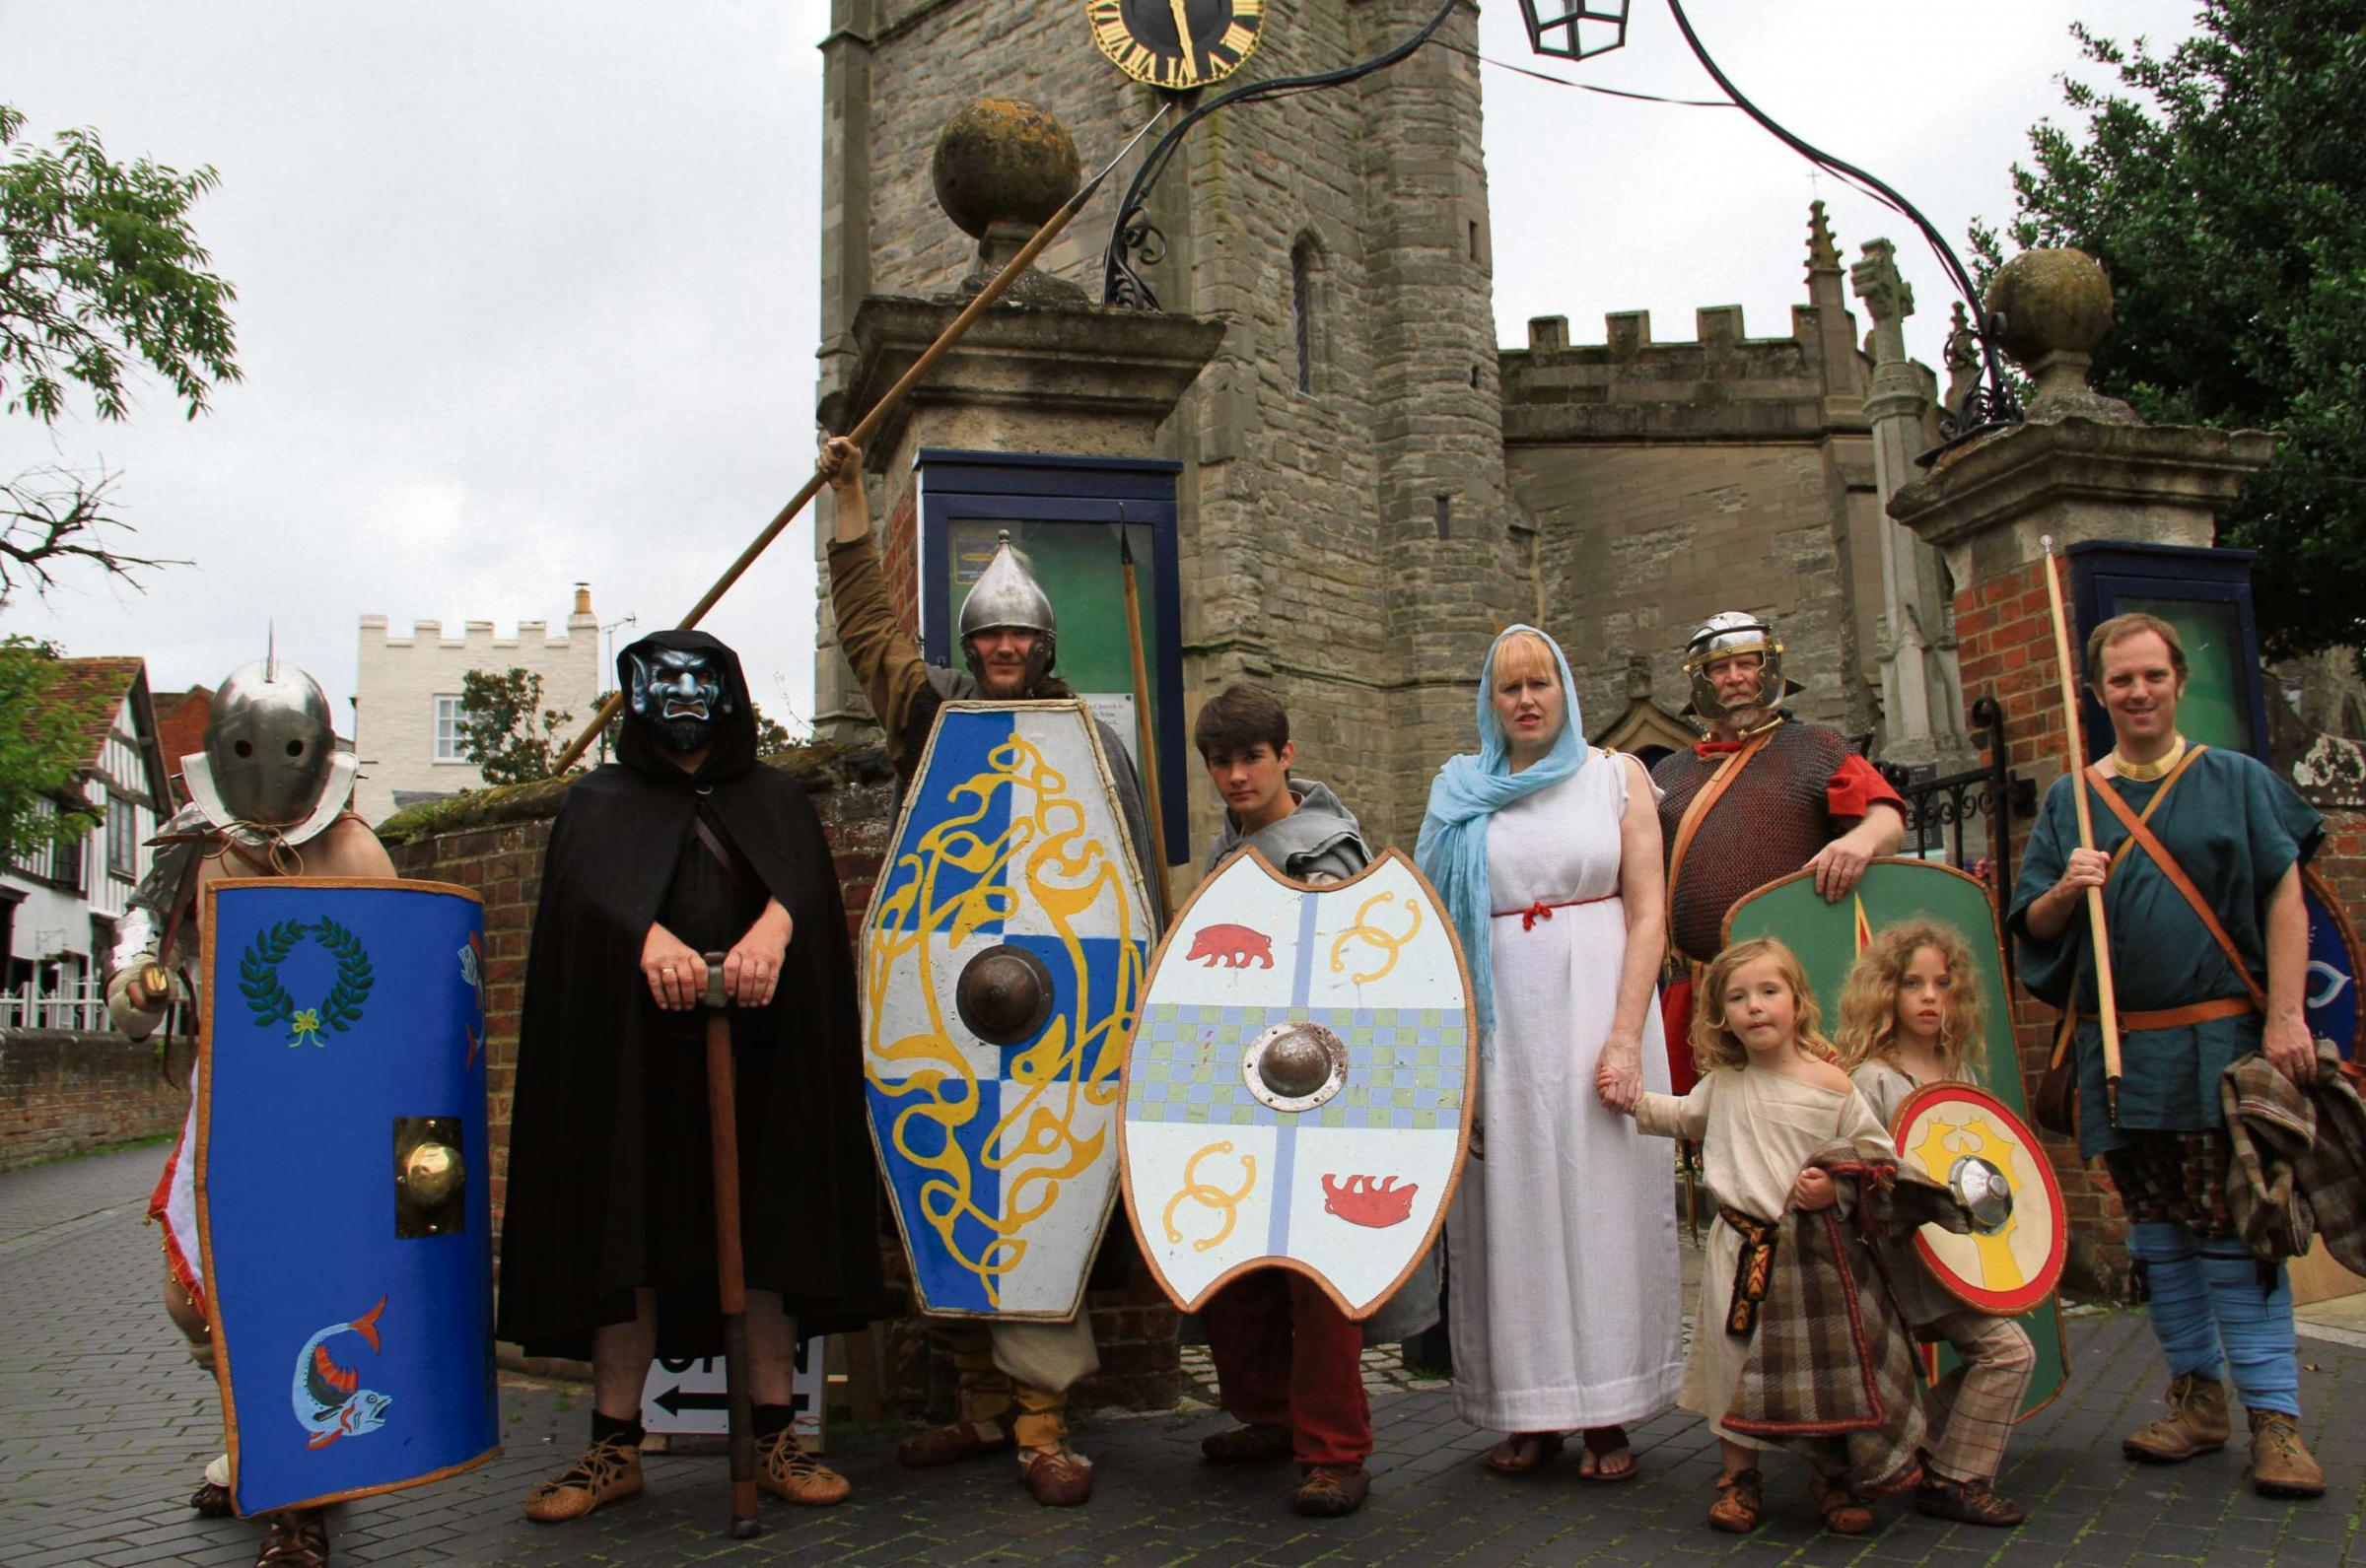 The Romans re-invade Alcester